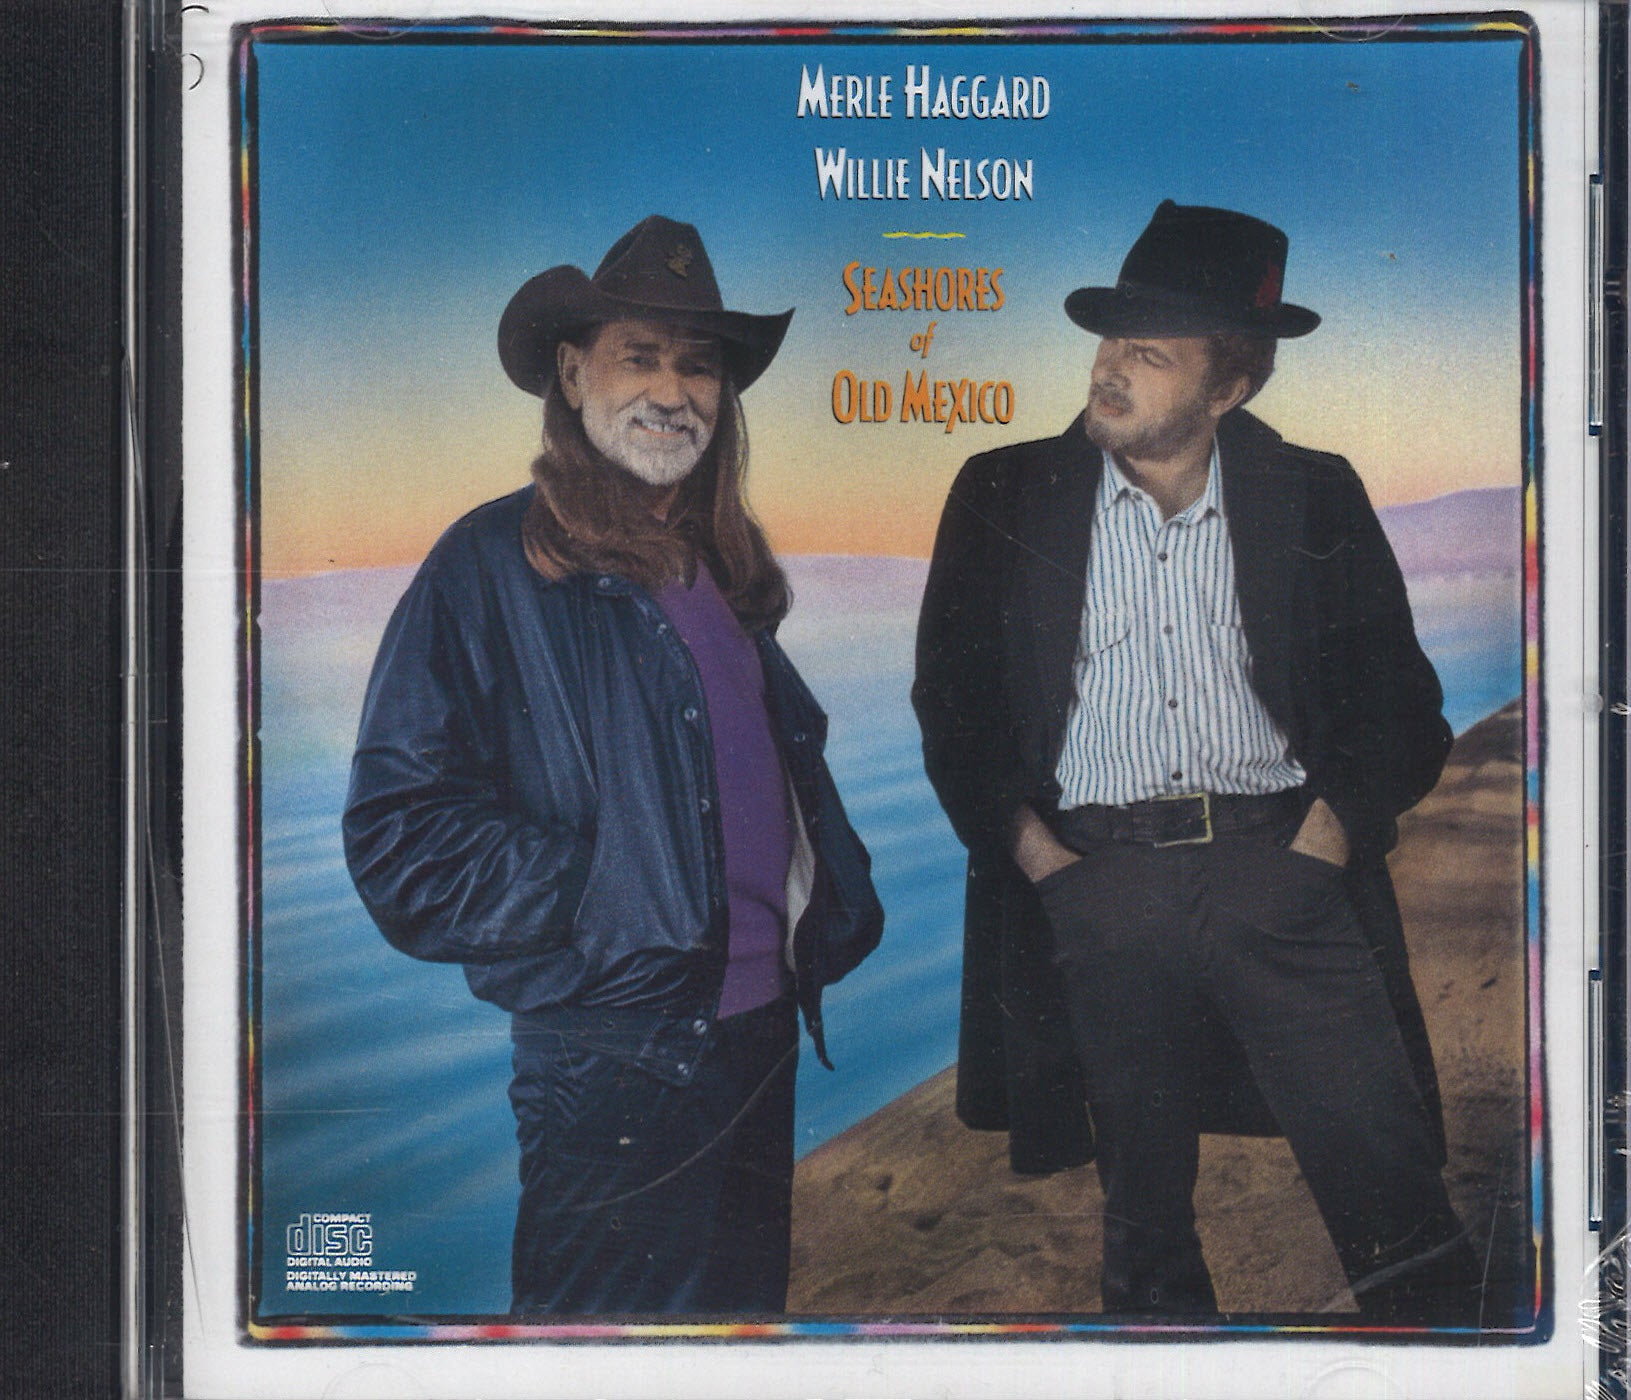 Willie Nelson & Merle Haggard Seashores Of Old Mexico